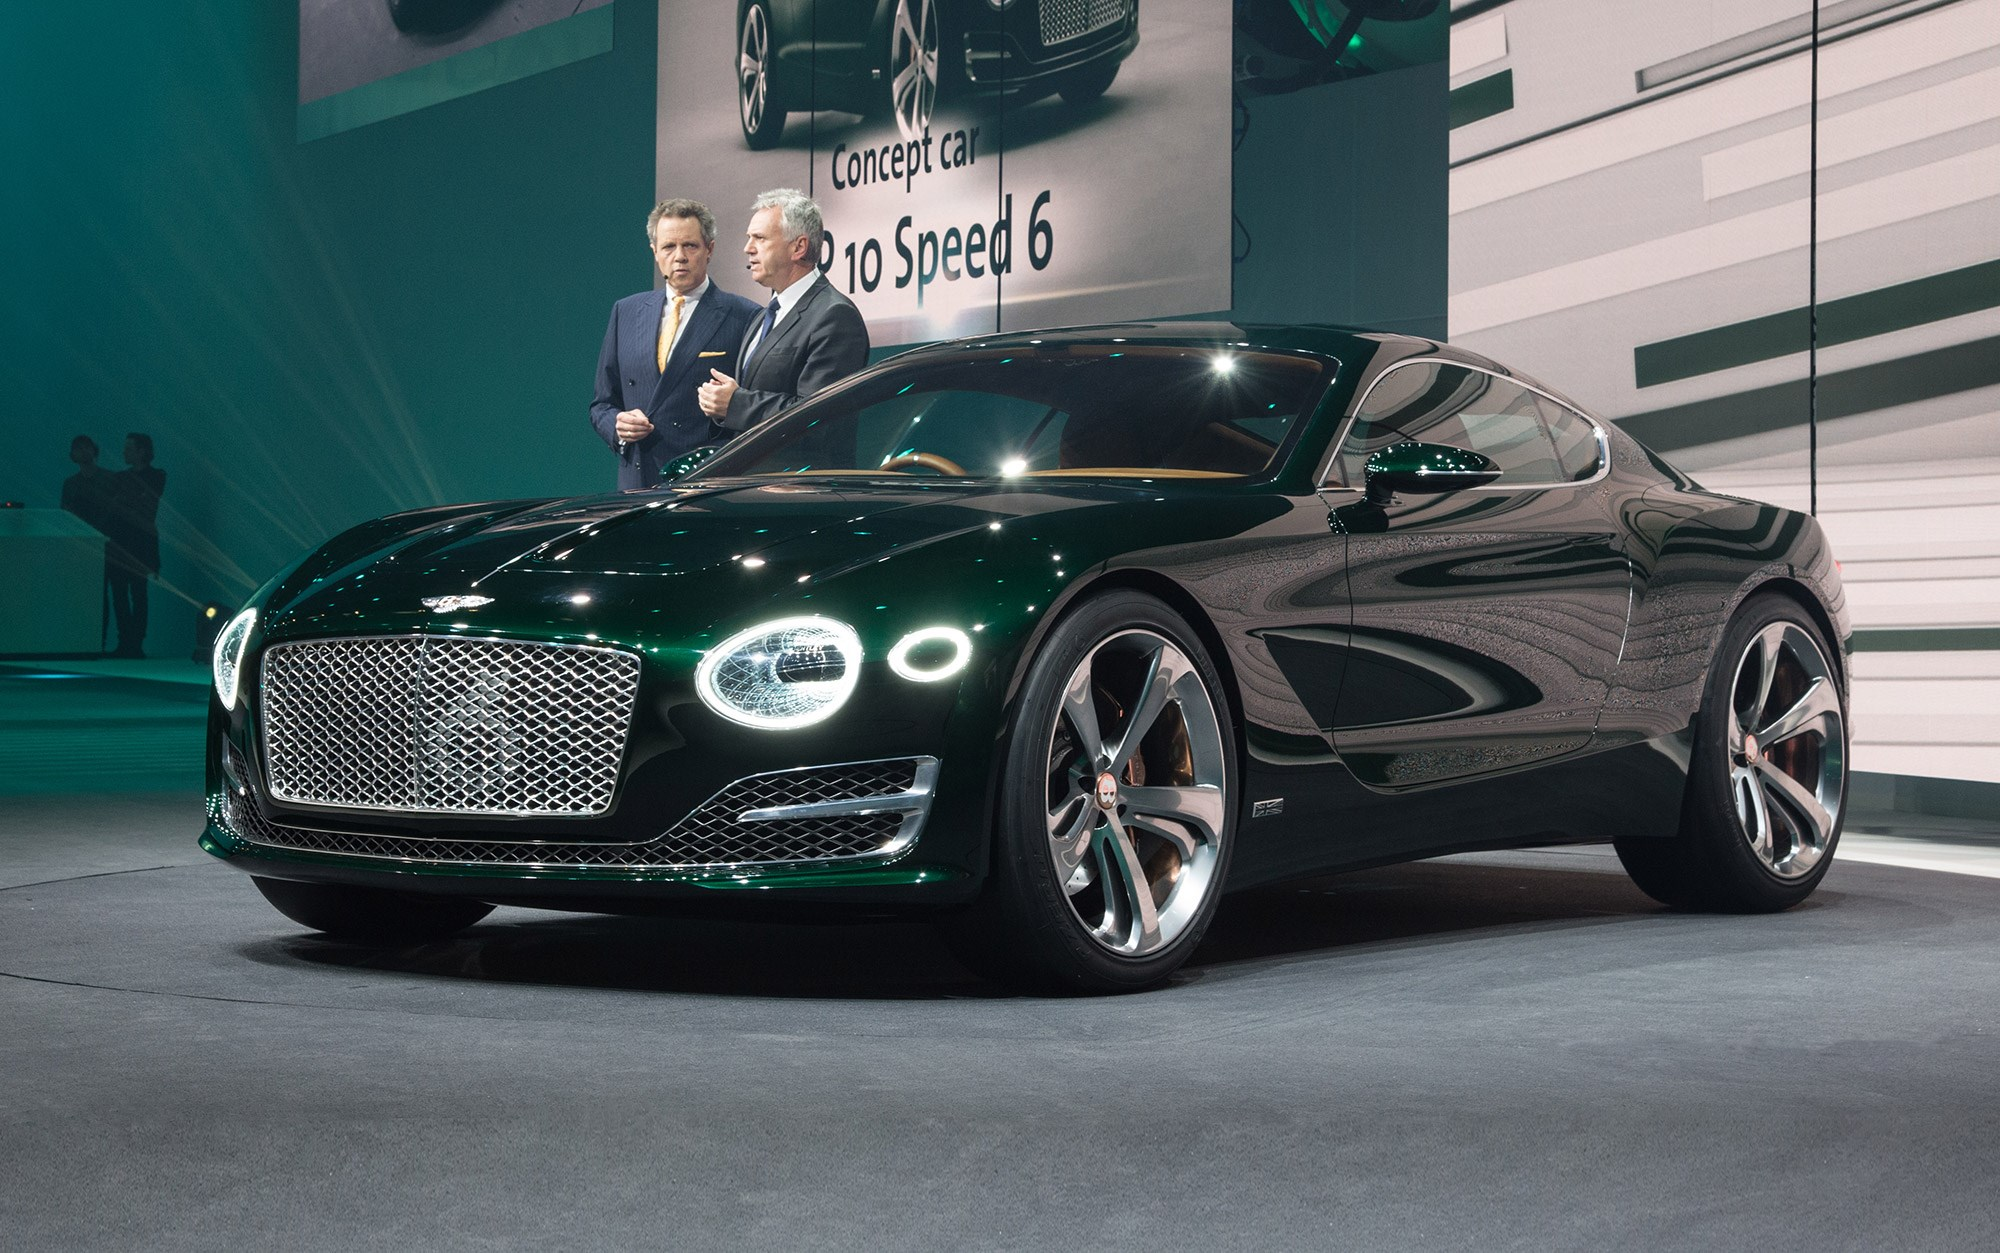 Now That S More Like It Bentley Exp 10 Speed 6 Points To New Two Seat Sports Car By Car Magazine